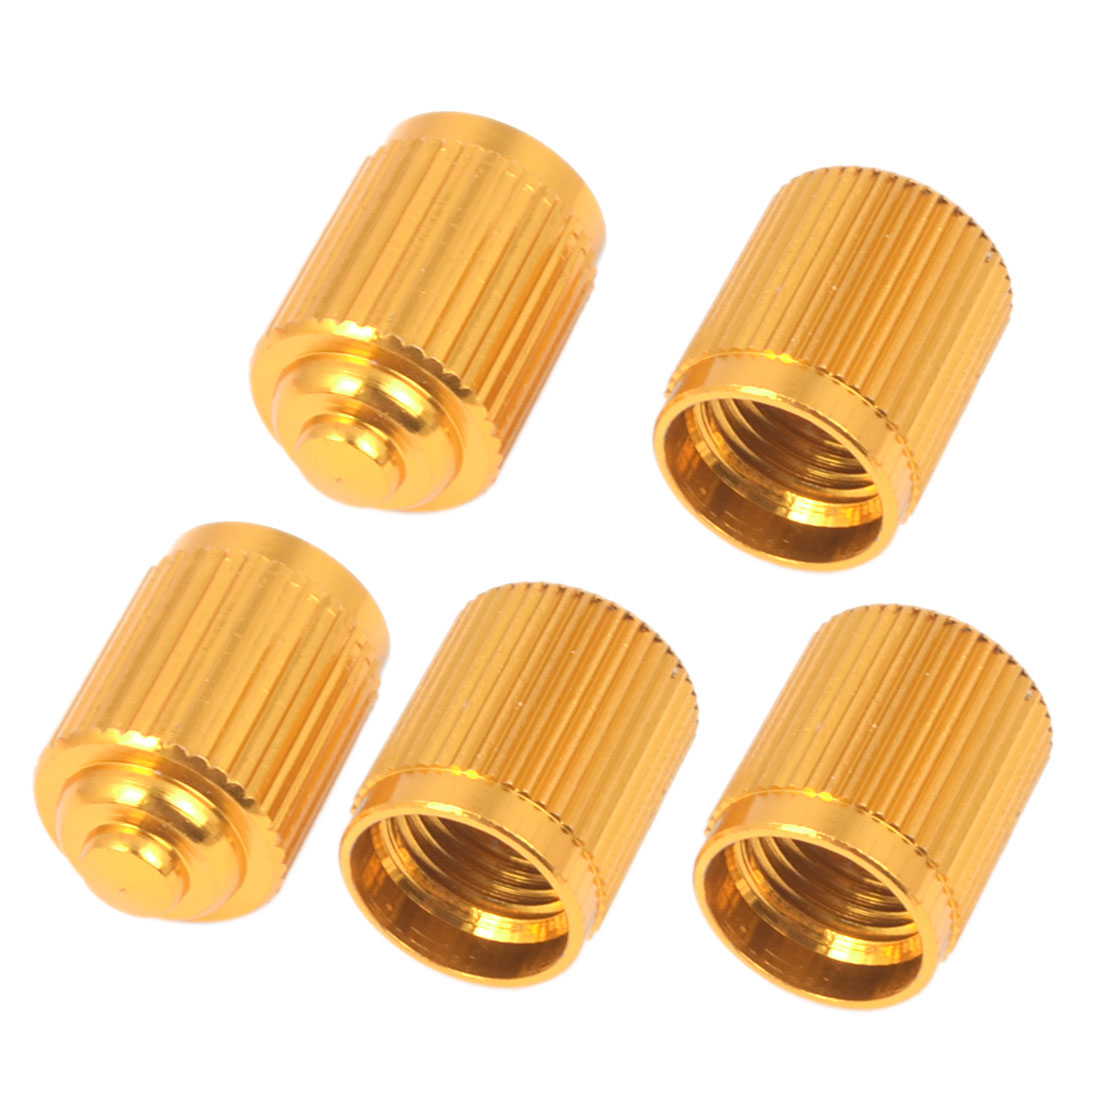 7mm Thread Dia Gold Tone Aluminium Alloy Mountain Bike American Type Schrader Tire Valve Caps 5 Pcs